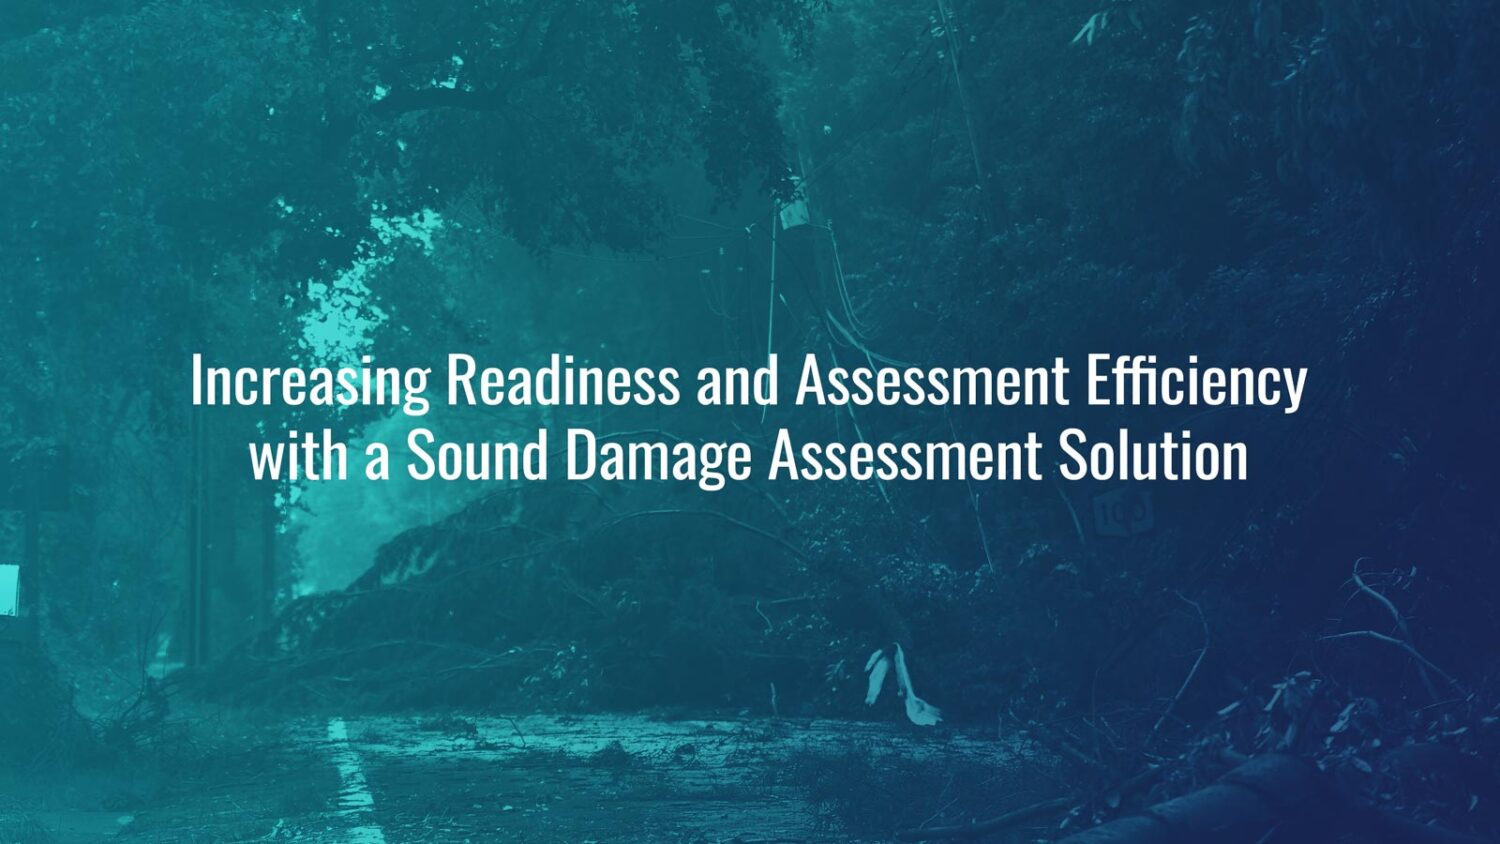 Increasing Readiness and Assessment Efficiency with a Sound Damage Assessment Solution